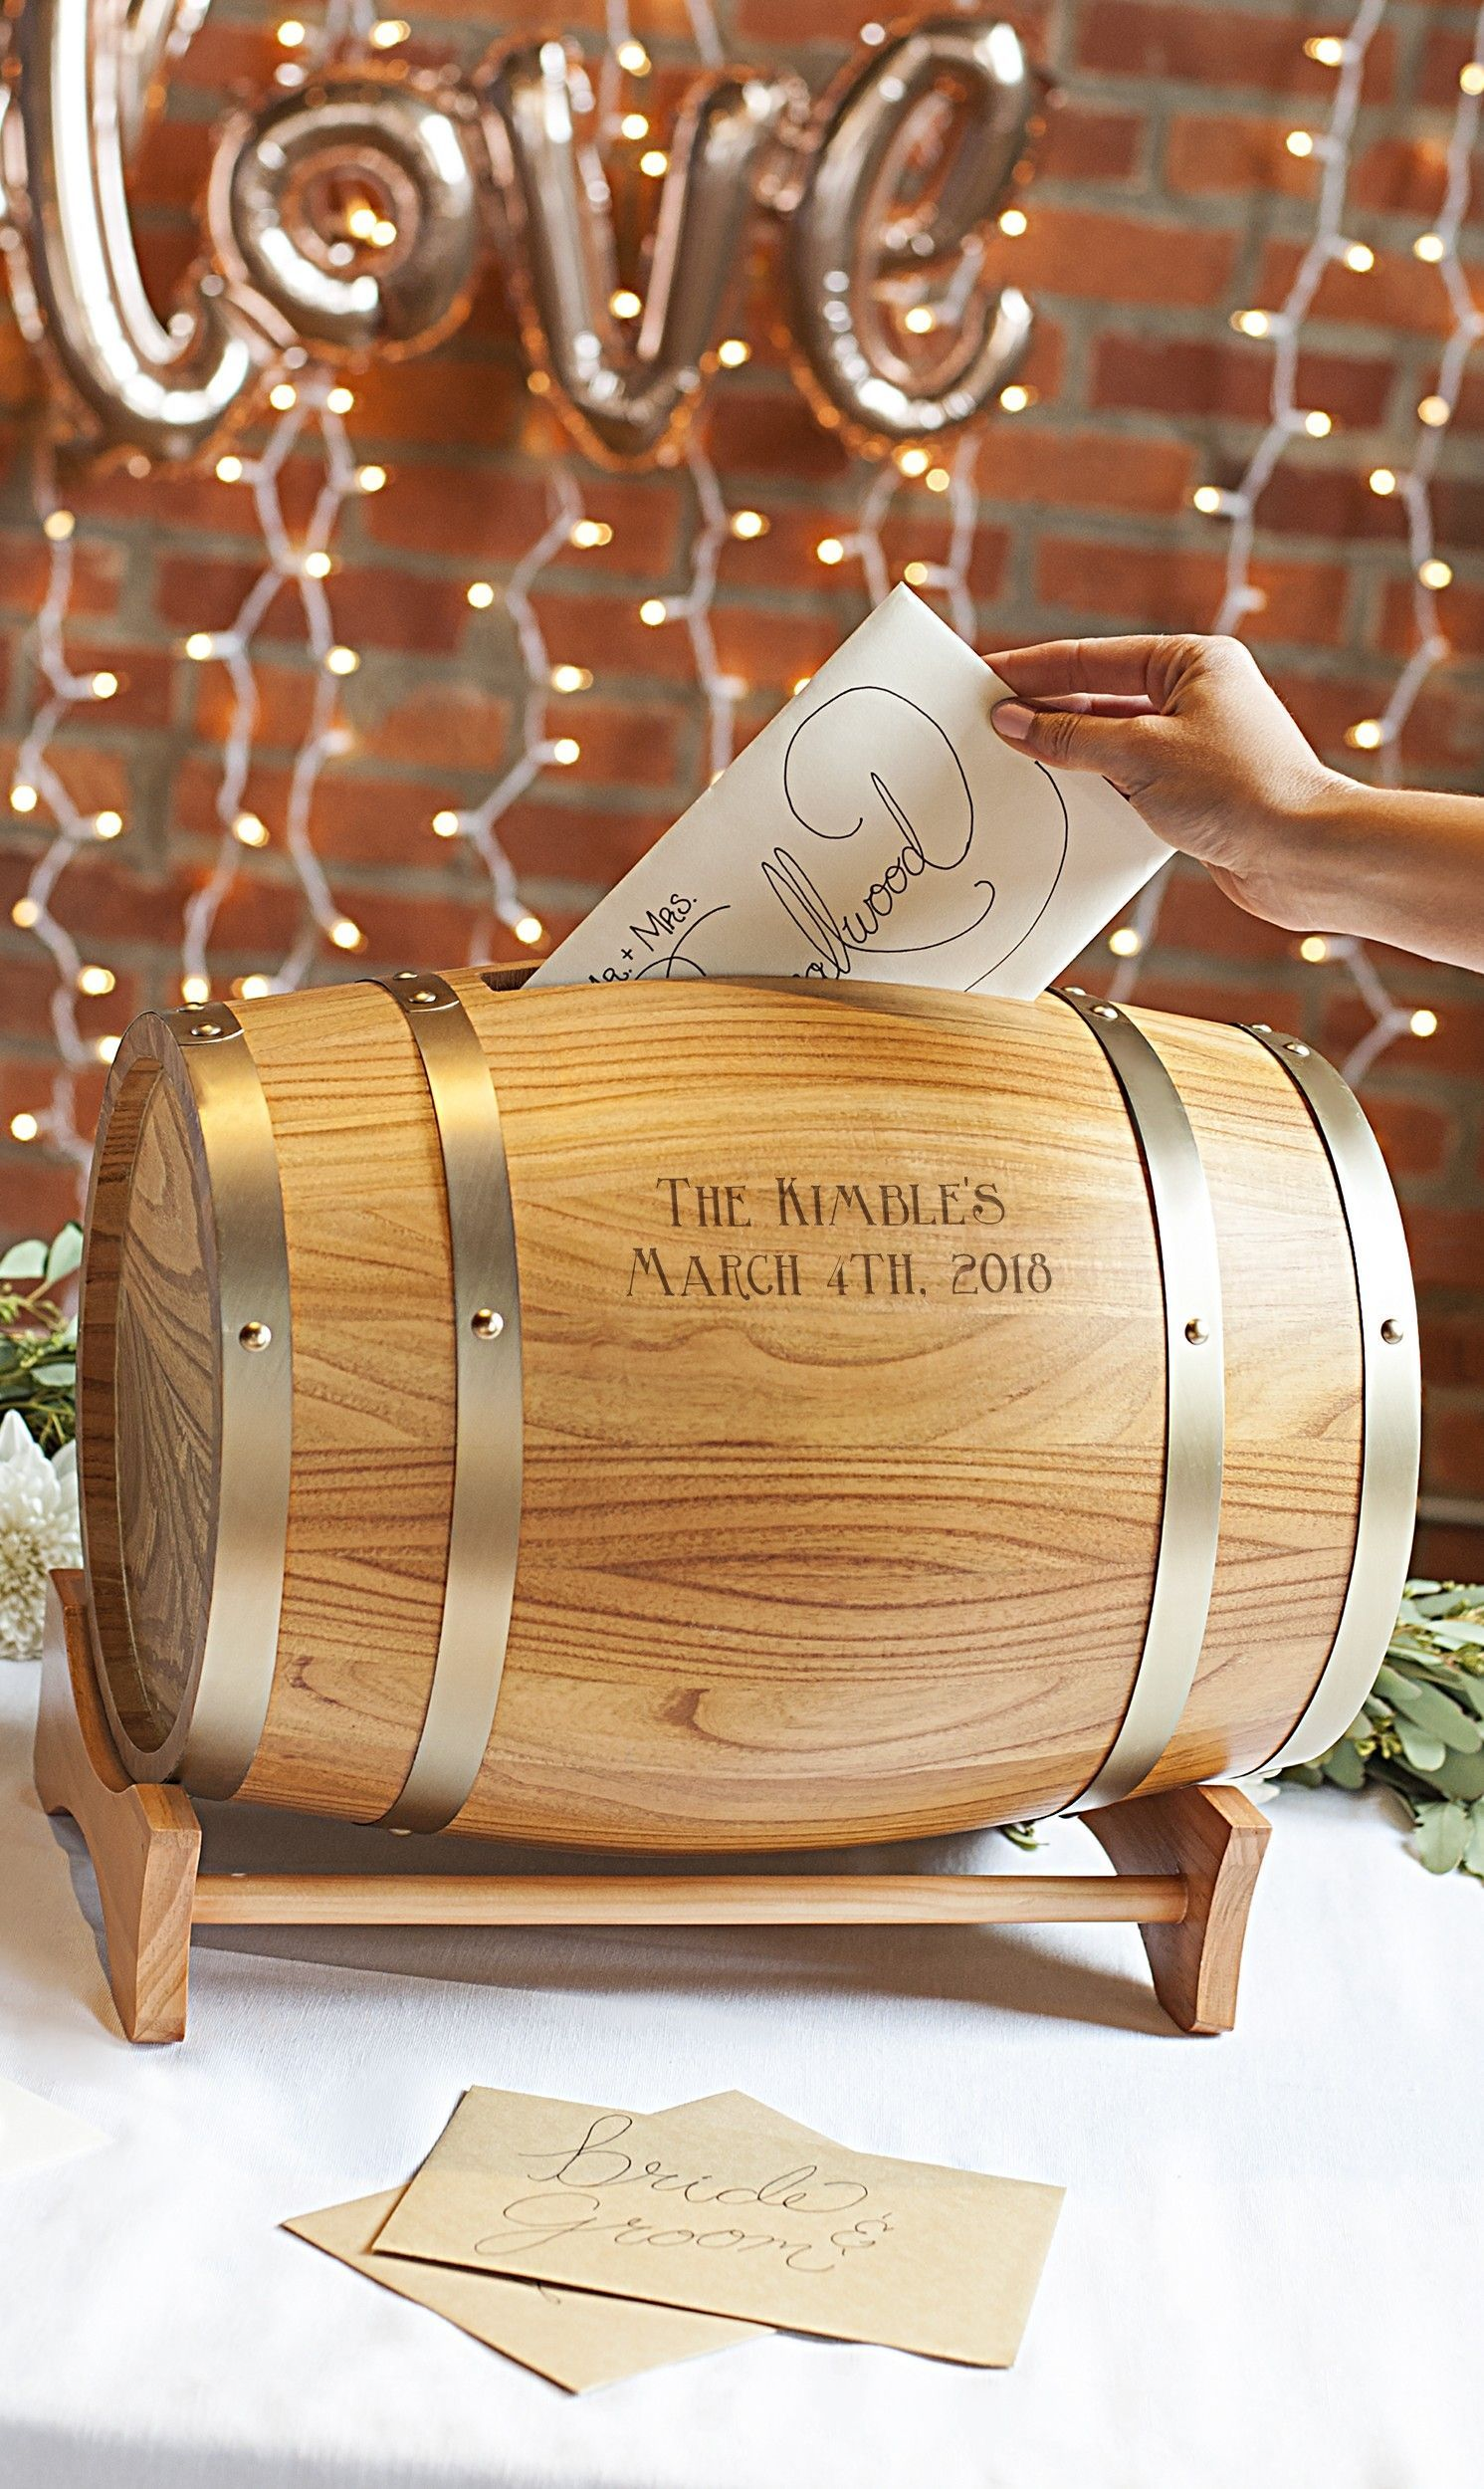 Personalized Wood Wine Barrel Wedding Gift Cards Holder  In my